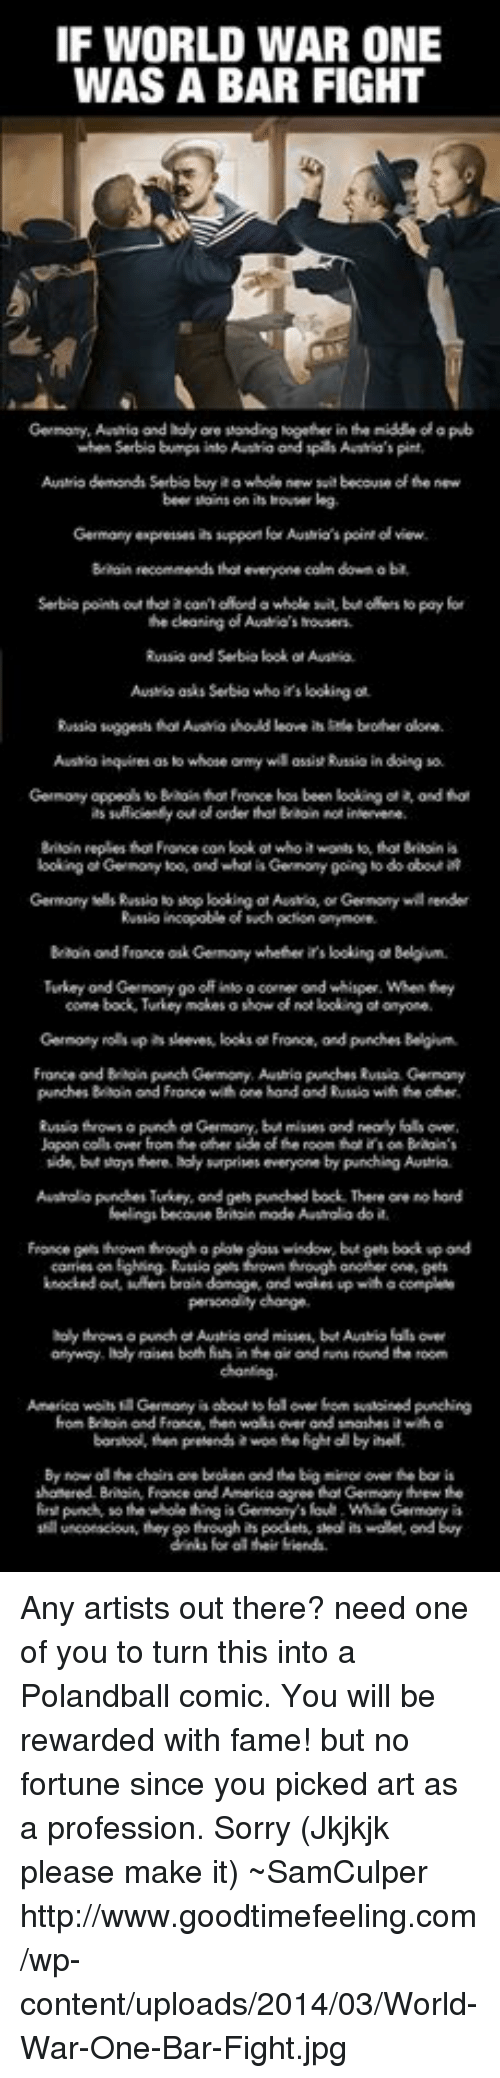 dts: IF WORLD WAR ONE  WAS A BAR FIGHT  Germony,Aaaia and holy ore standing together in tenidde olapub  when Serbia bumps into and spas Austria's pint.  Ausrio demond Serbiobyaa whole new sitbecouse ofthe new  beer soins on is houser lag  Germany expresses  suppor for Austrio's point view.  Baain recommends thateveryone calm down aba  Serbia point out that acon oRondo whole suit, but oaets No pay for  the cleaning of Austio's mousers  Rvisio and Serbia kookofAusrio.  AutMk asks Serbio who looking ot  Russia suggests hol Ausio should loove brofher done.  Austio inquires  as whose ormy wil assist Russiain doing  booking Gernomy too, ond whot is Germony going o do  obout  Rvsnio incopobeof such octon onymore.  Turkey ond Gernony go off inloo corner ond whisper,When they  France ondBrion purch Germony, Auwtrio punches Rvnsa Germany  punches Baon ond Fronce with one hond ondRusko with other.  wde, bit says there. holy surprises everyone by punching Awurka.  Ausrolopundhen Turkey, and gets punched book There ore hord  feelings becouse mode Aastalo do it.  personally change.  holy thrown opunchd Austria and misses, but Auntio dts over  raises both fishinheairond rnsround the room  anyway  Hon Braoin France, ten waksover ond snashes wiha  shonered Bilain Fronce ord America agree  punch so the whole thing is Genmoy's foul. While Germory is  unconscious, they gothrough is pockets, stood is wolet ond buy  their fiends. Any artists out there? need one of you to turn this into a Polandball comic. You will be rewarded with fame! but no fortune since you picked art as a profession. Sorry  (Jkjkjk please make it)  ~SamCulper   http://www.goodtimefeeling.com/wp-content/uploads/2014/03/World-War-One-Bar-Fight.jpg